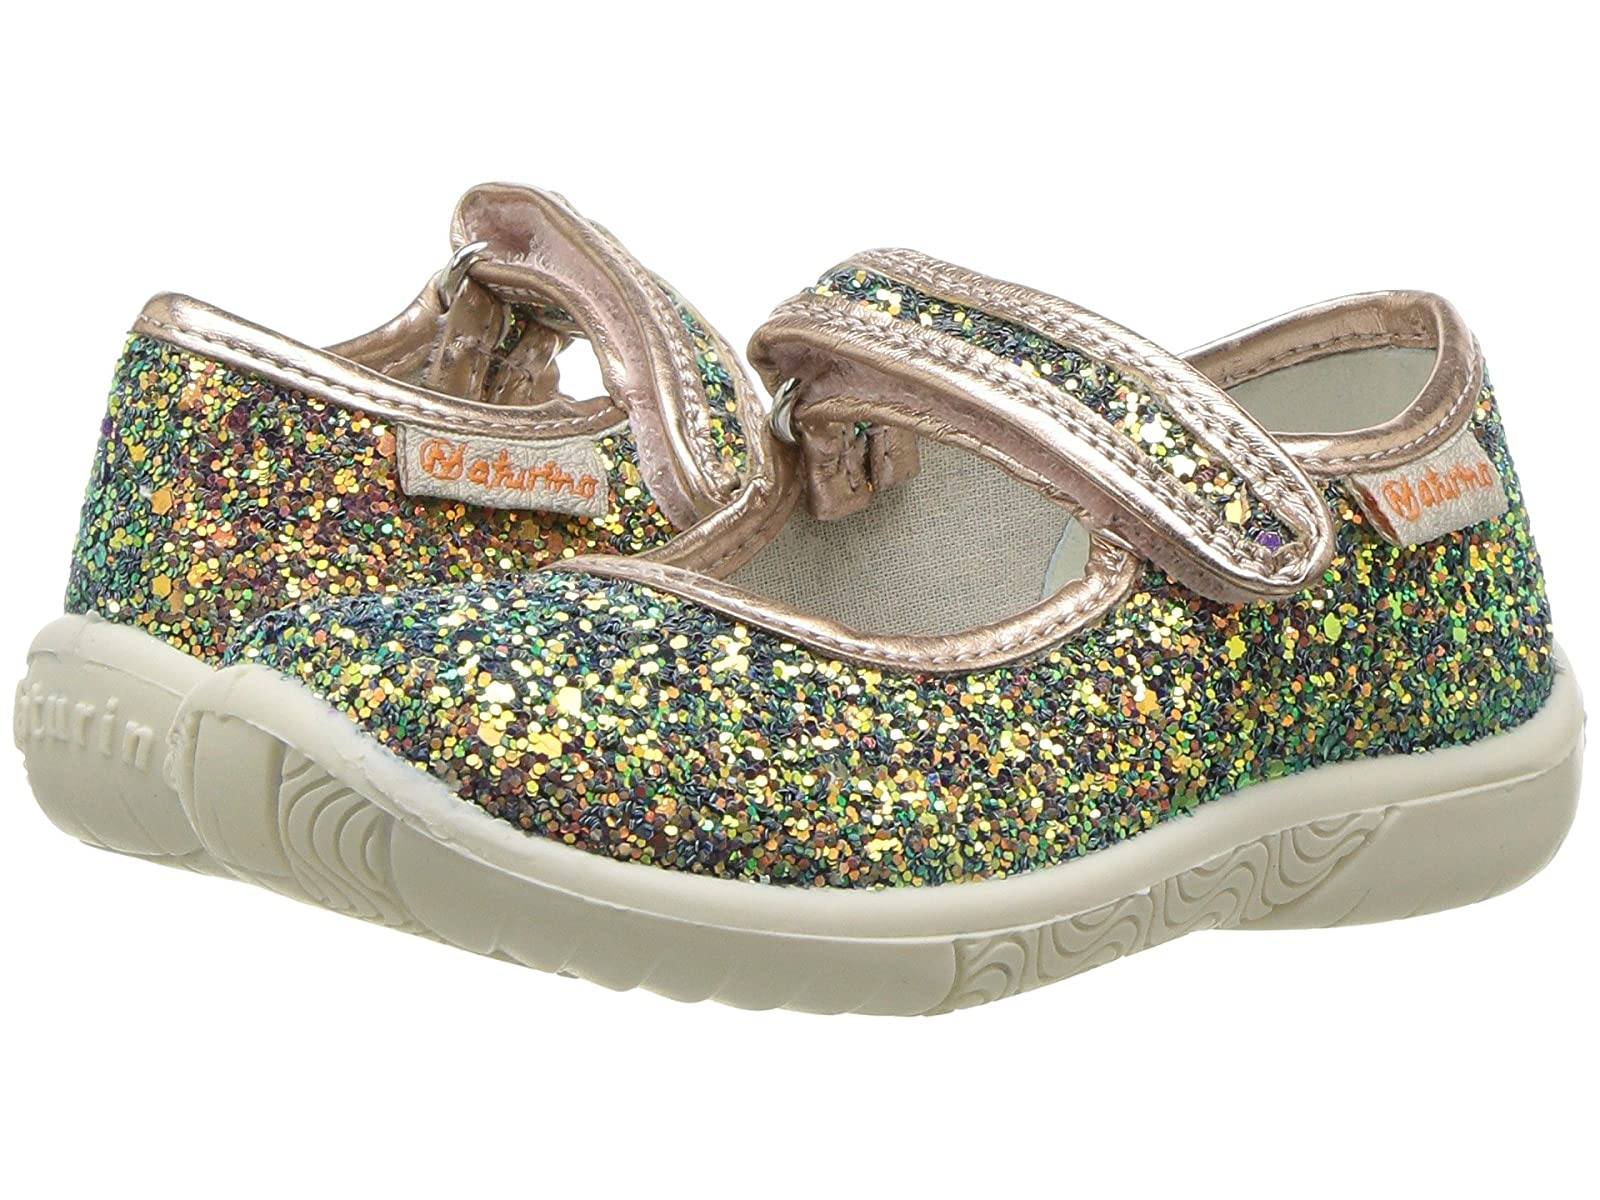 Naturino 7703 SS18 (Toddler/Little Kid)Atmospheric grades have affordable shoes